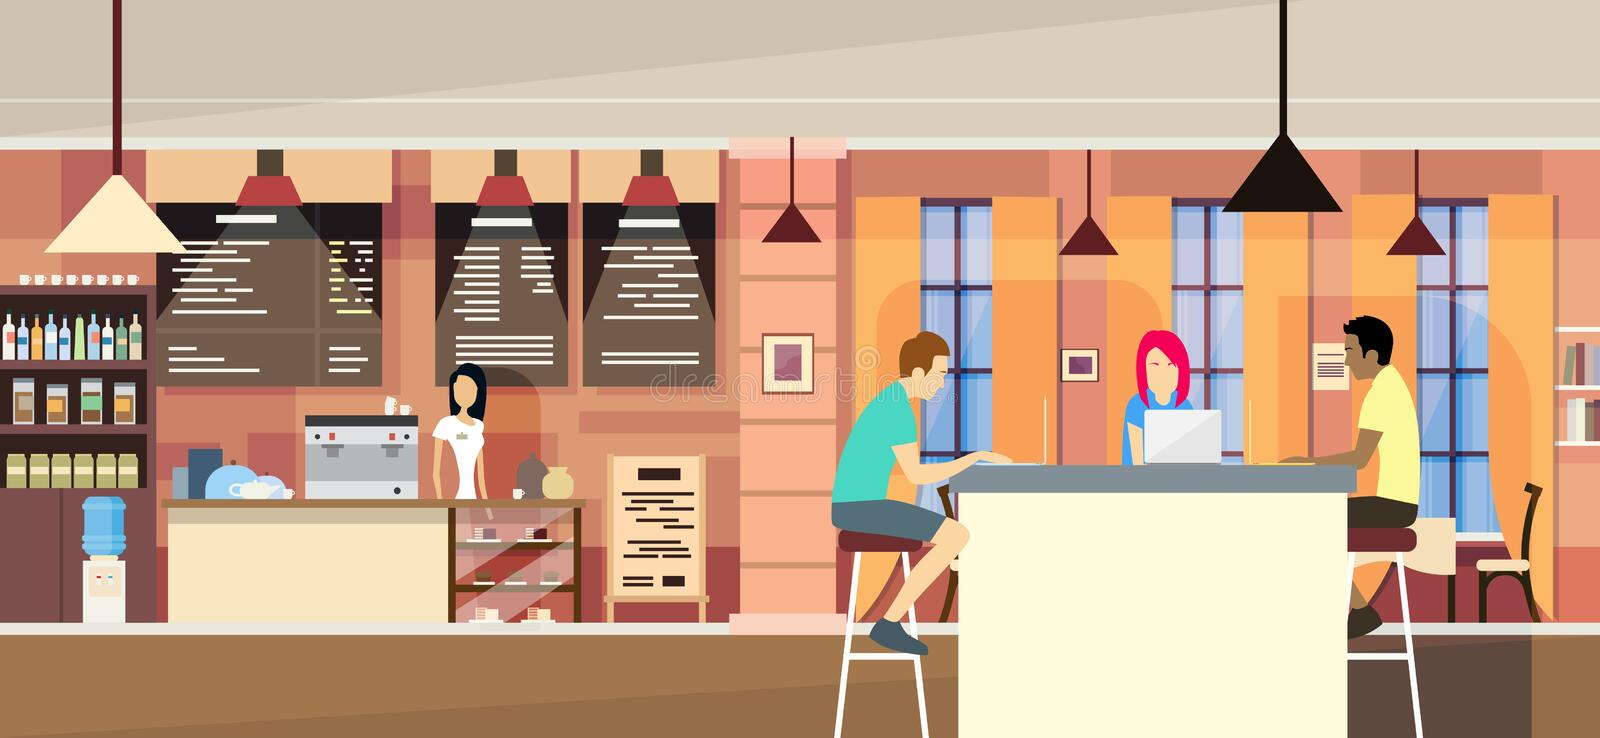 Casual People Group In Modern Cafe Sit Chatting, Students University Campus. Vector Illustration royalty free illustration